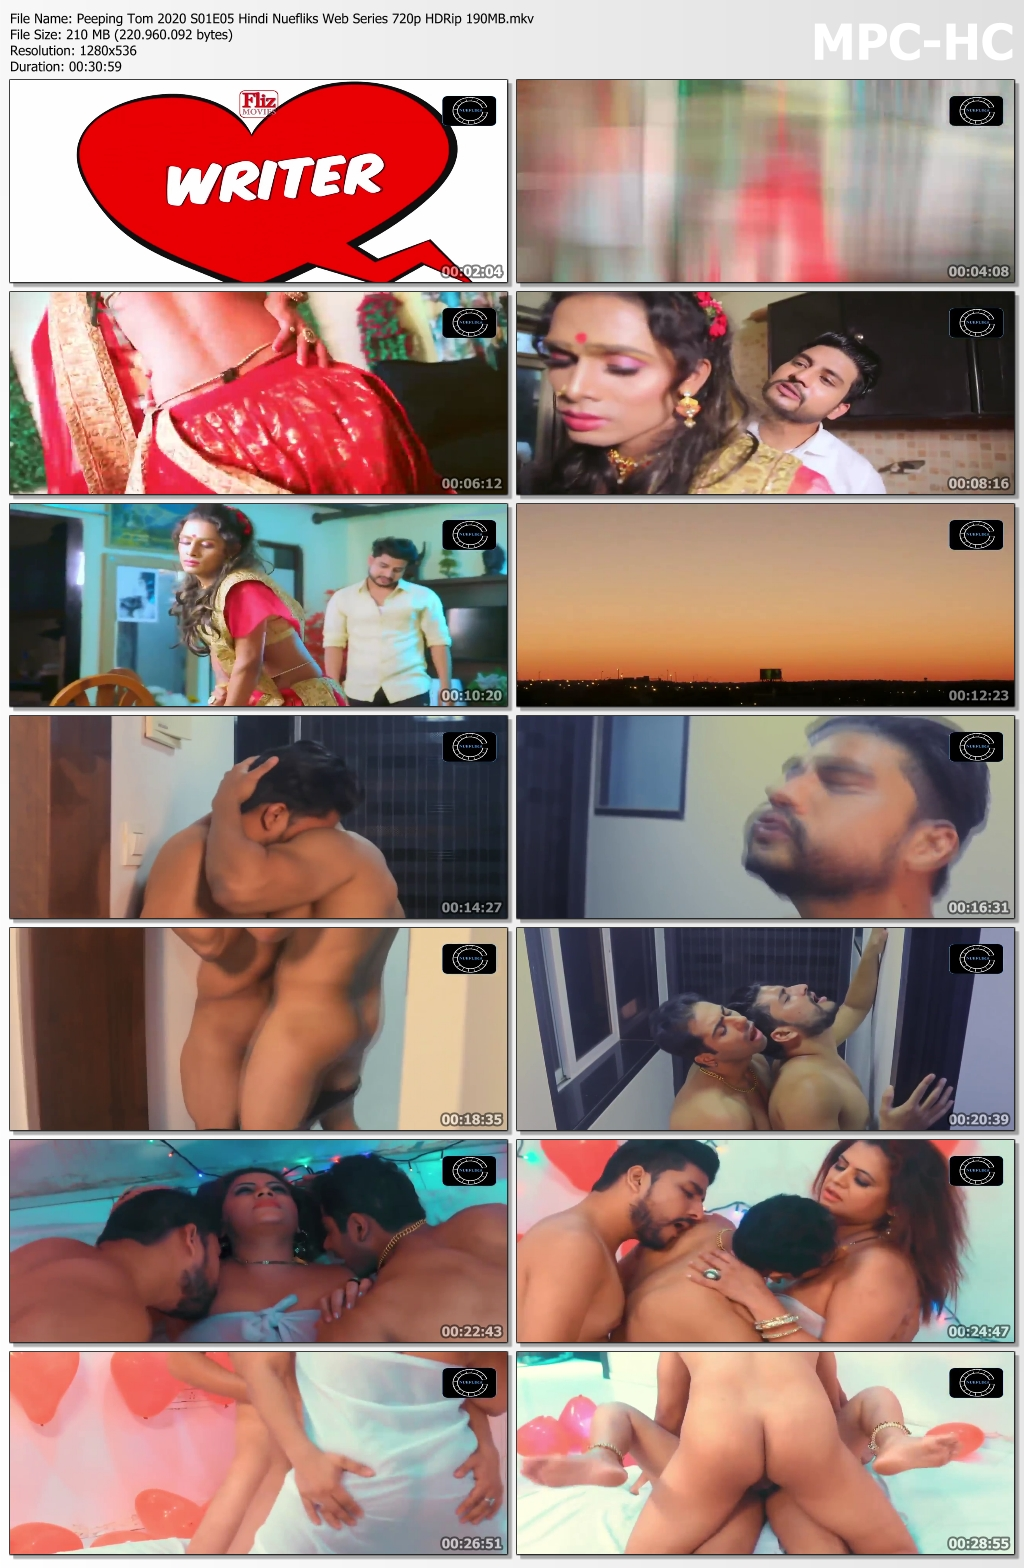 Peeping-Tom-2020-S01-E05-Hindi-Nuefliks-Web-Series-720p-HDRip-190-MB-mkv-thumbs